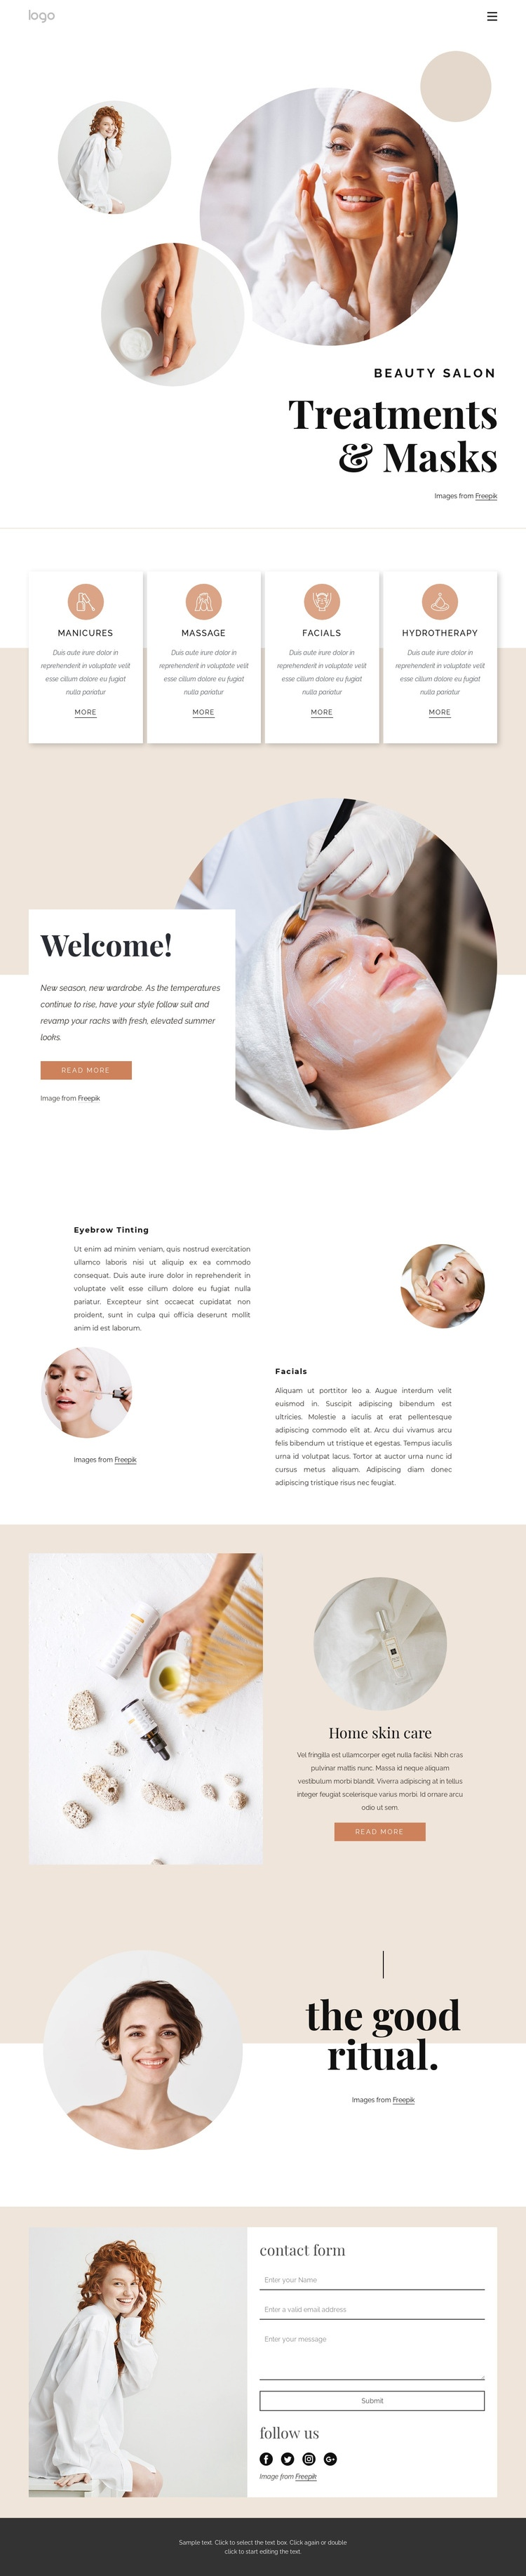 Body treatments and massages Web Page Designer